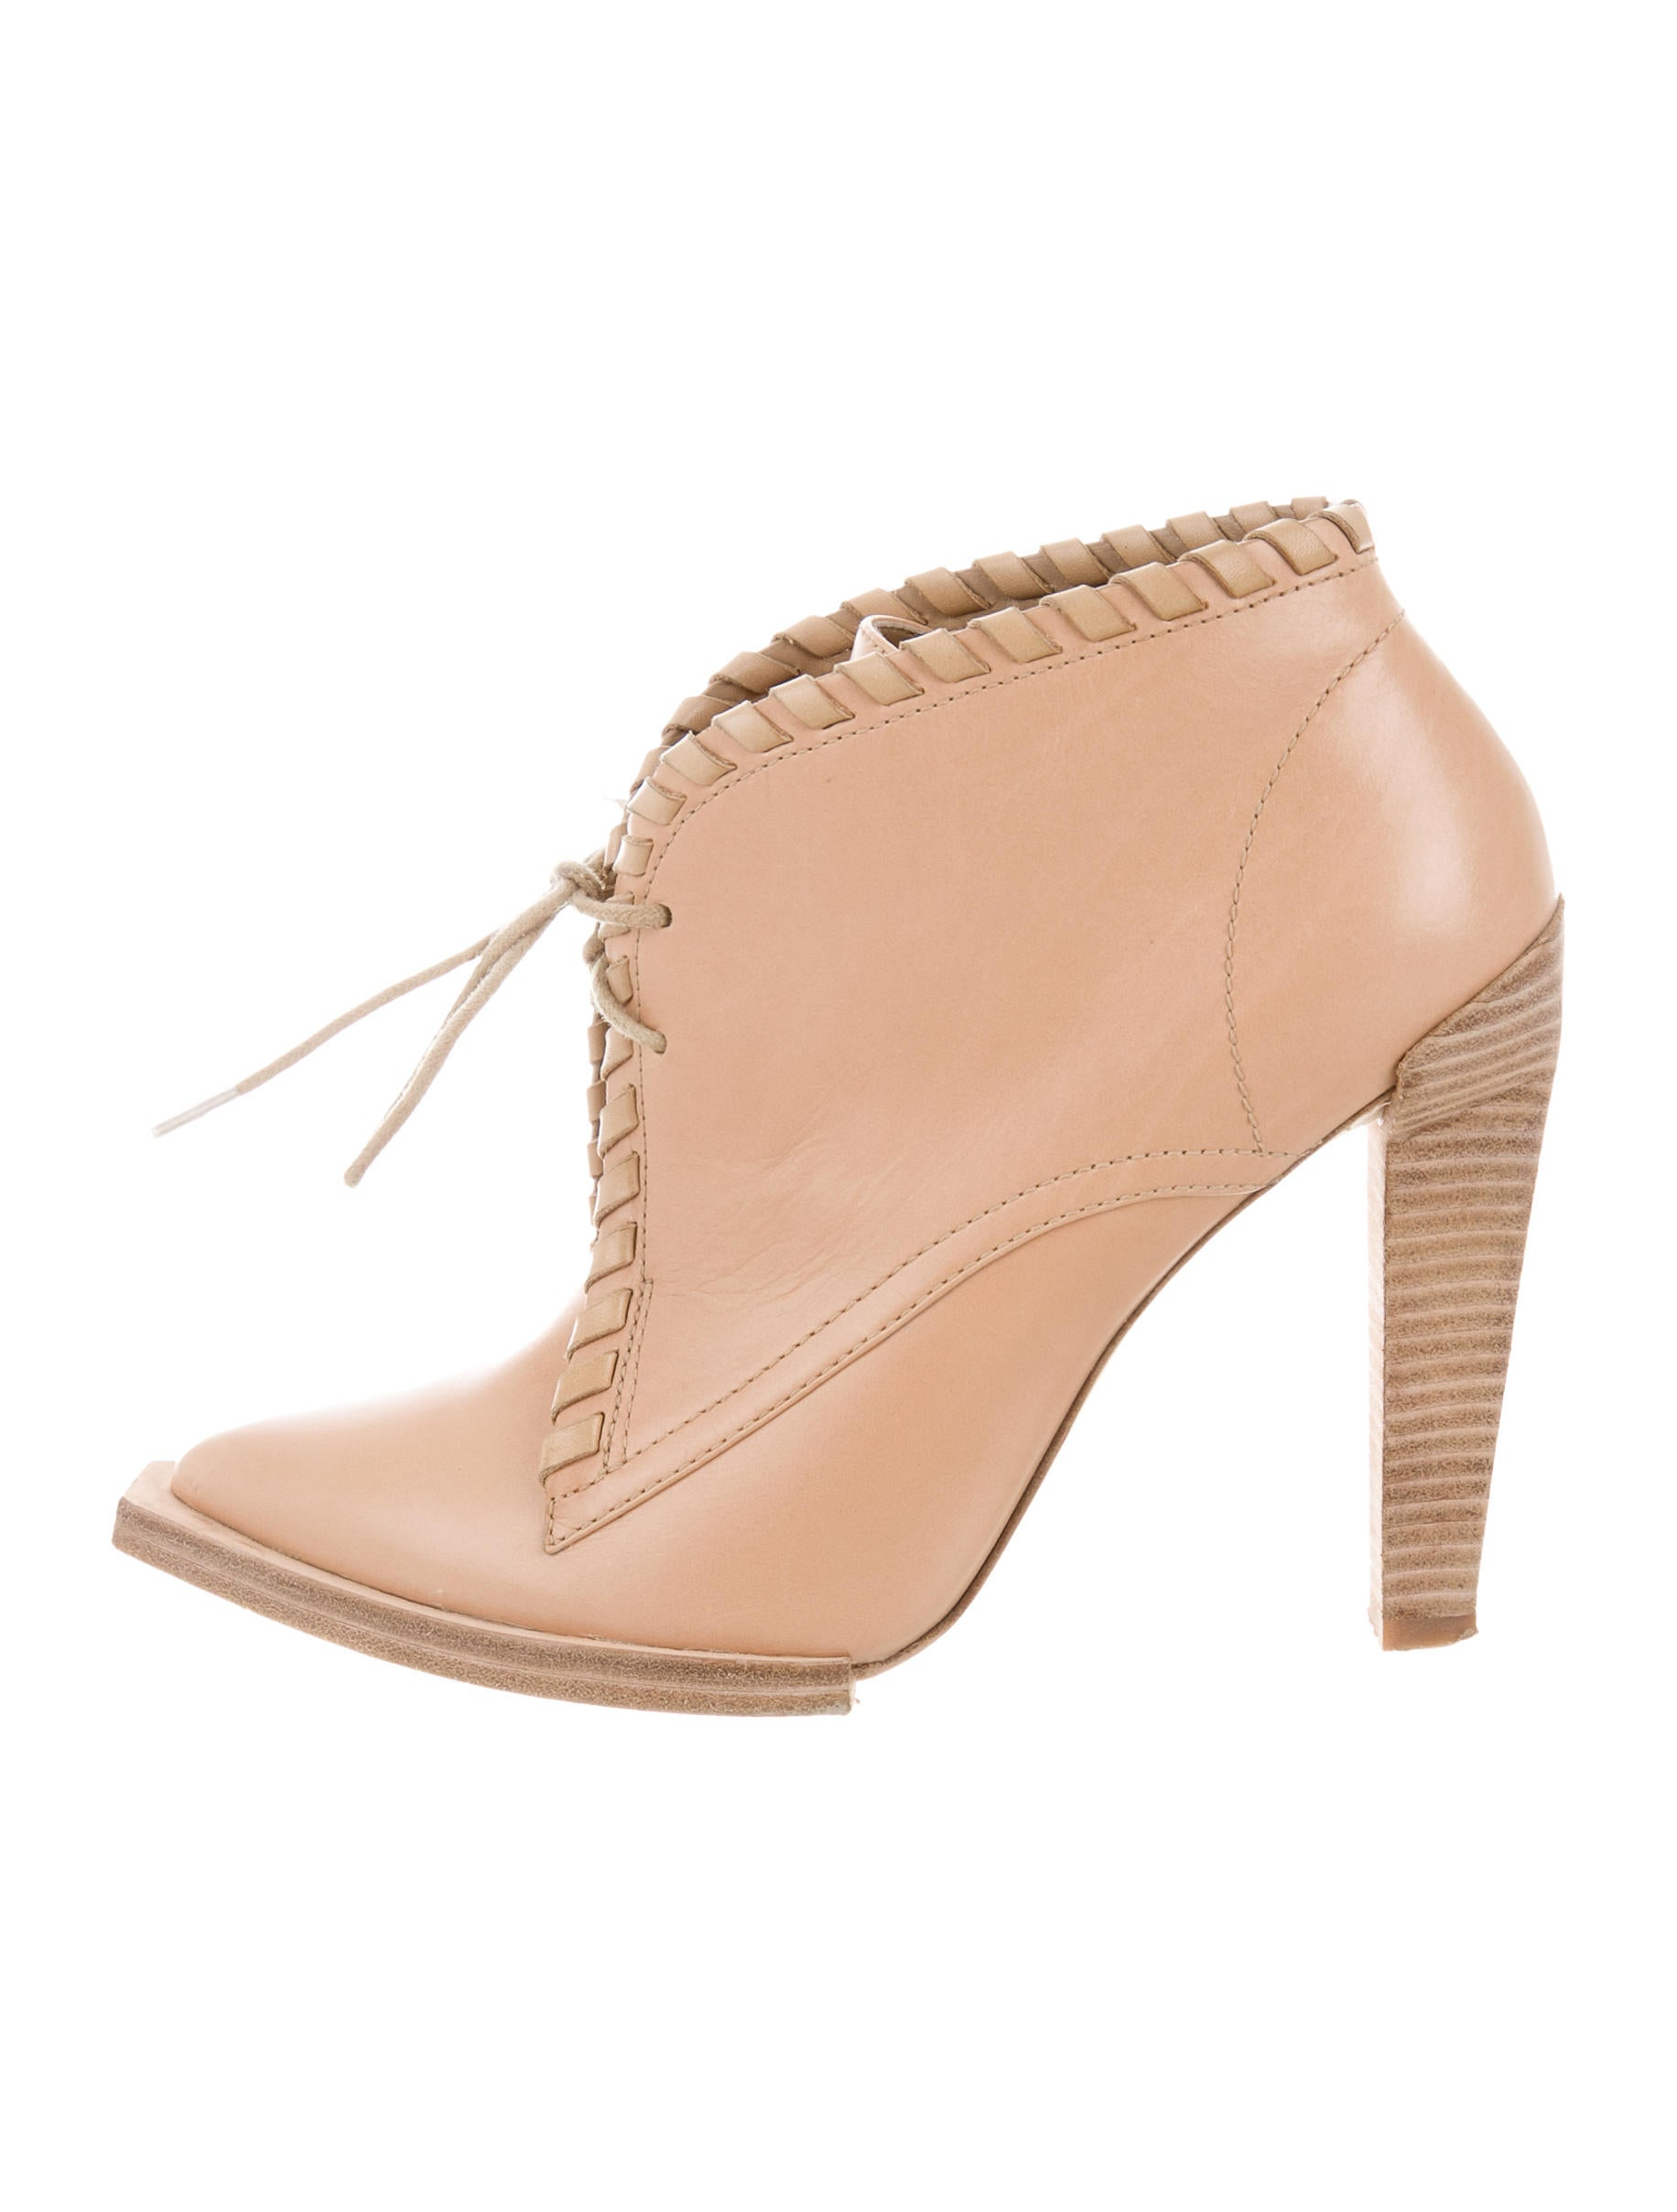 wang leather lace up ankle boots shoes